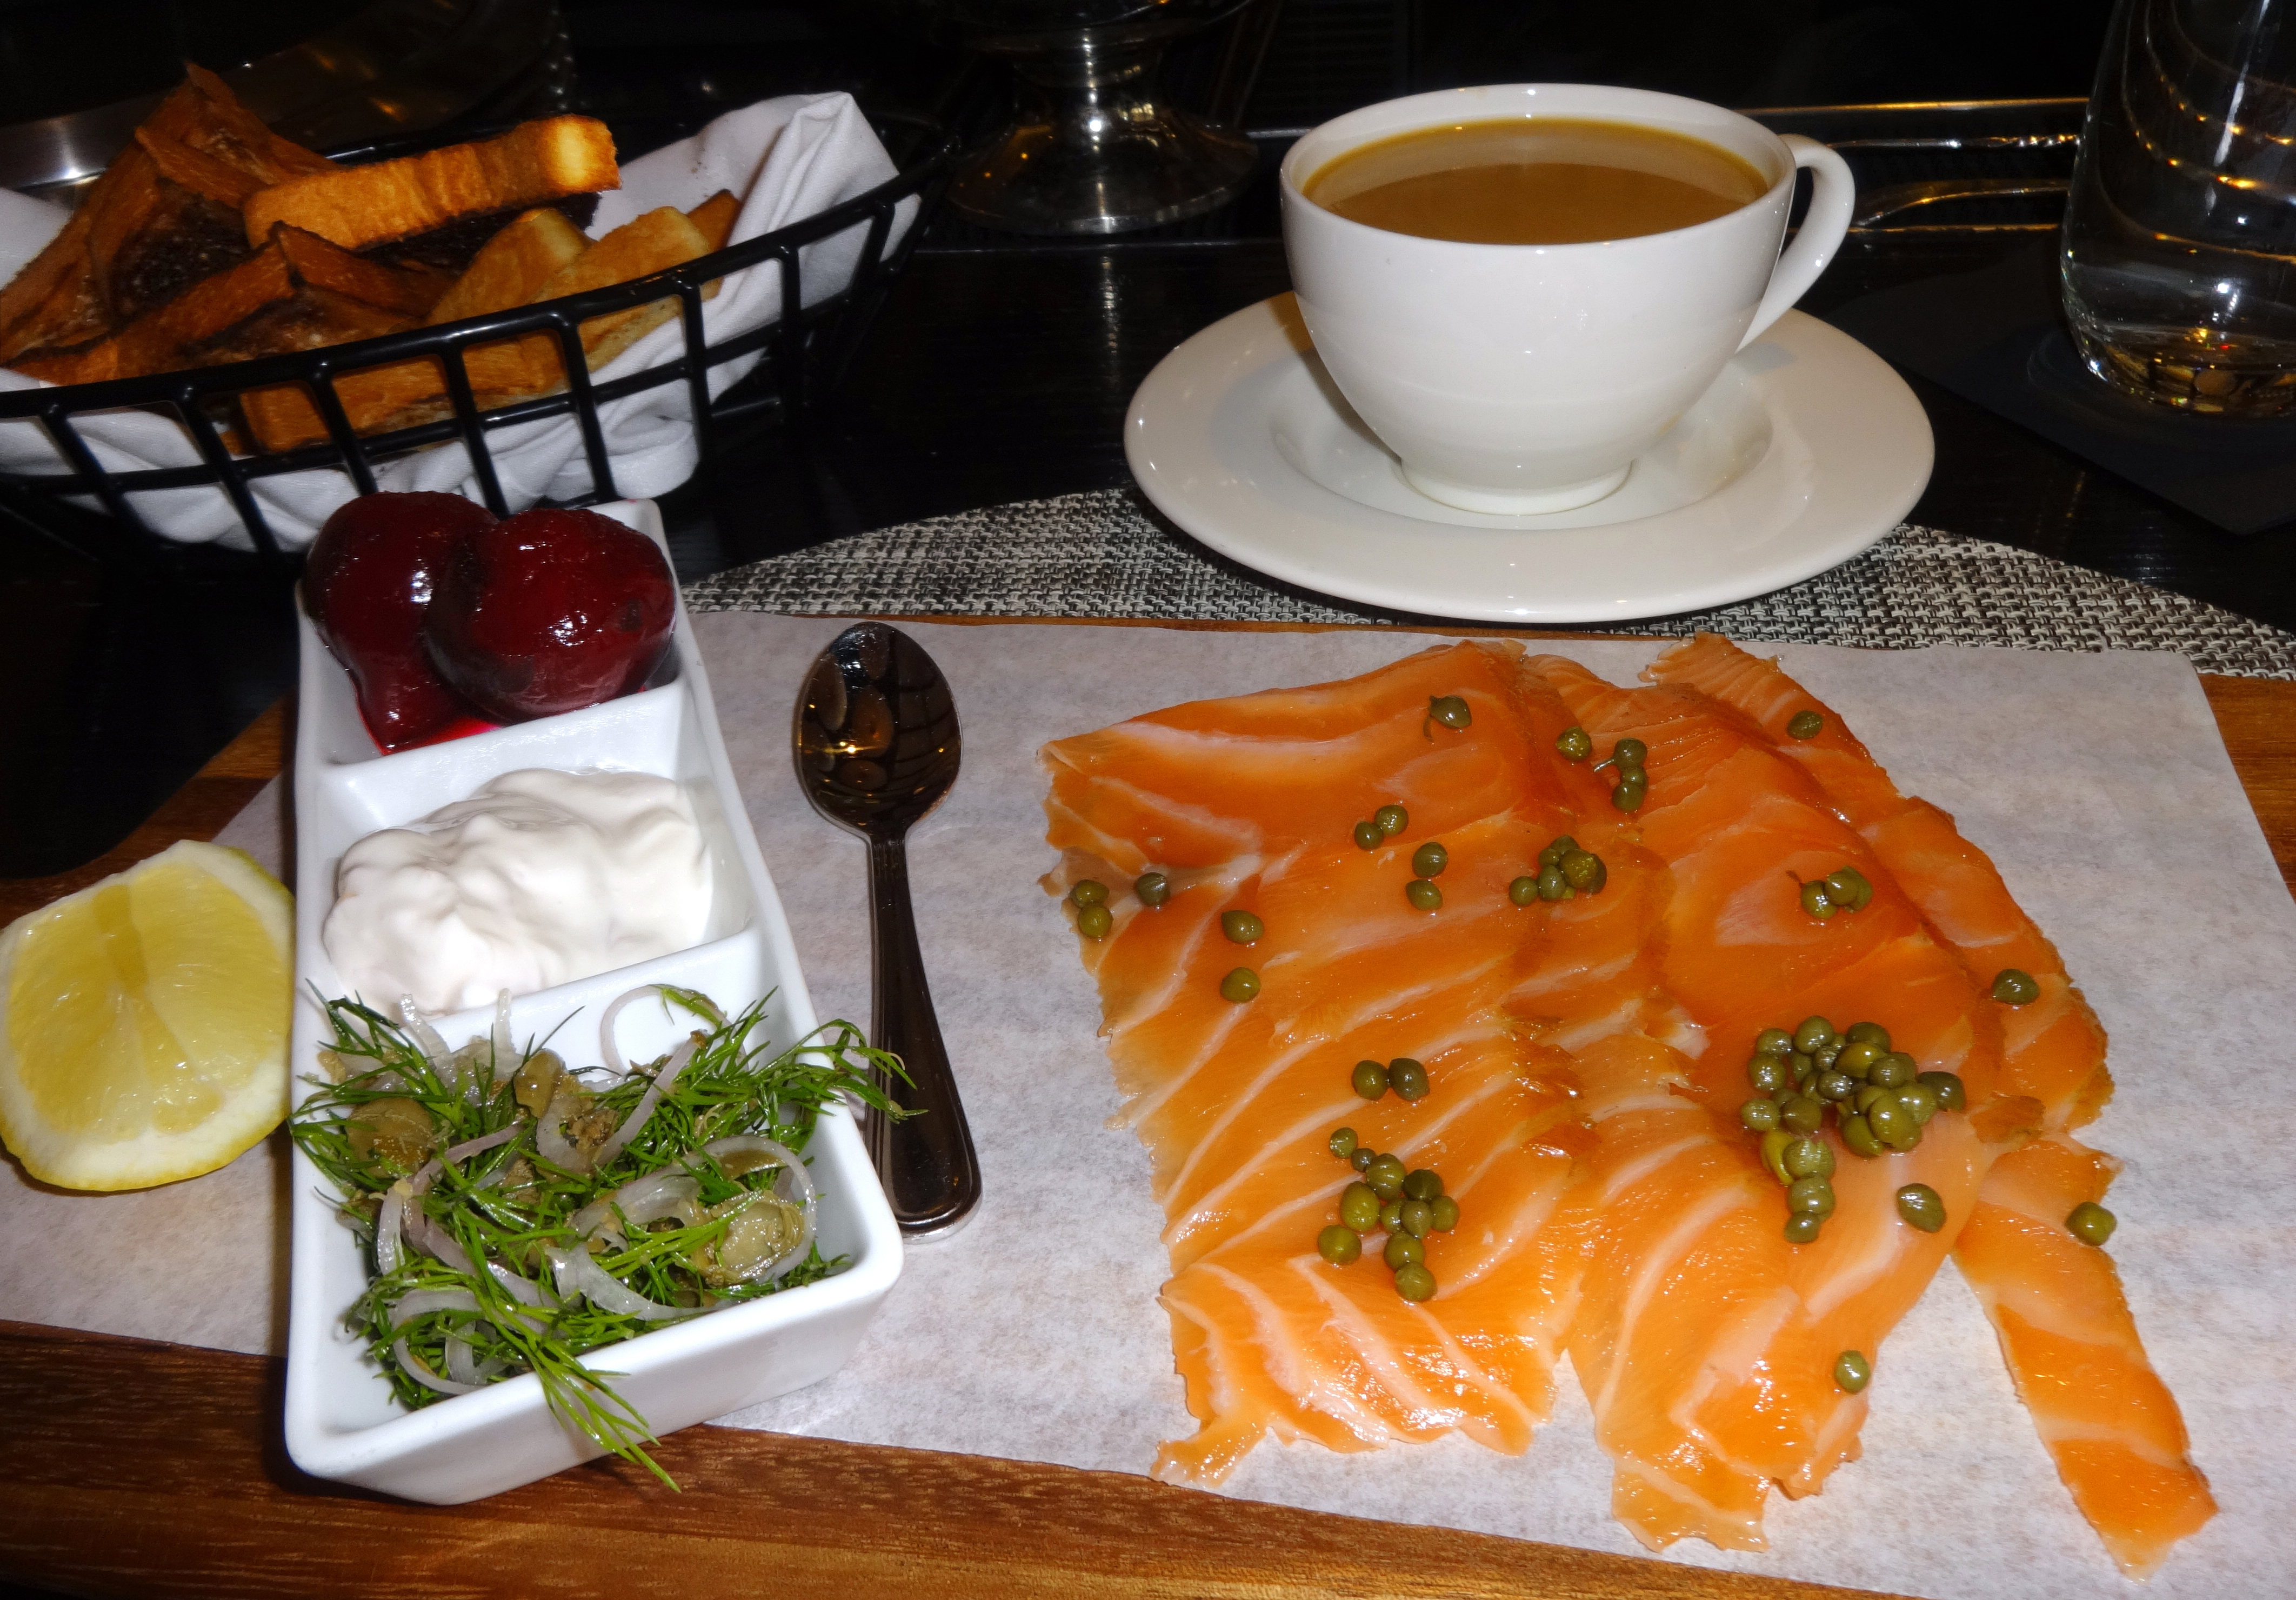 Cured salmon brunch item North End Grill 2